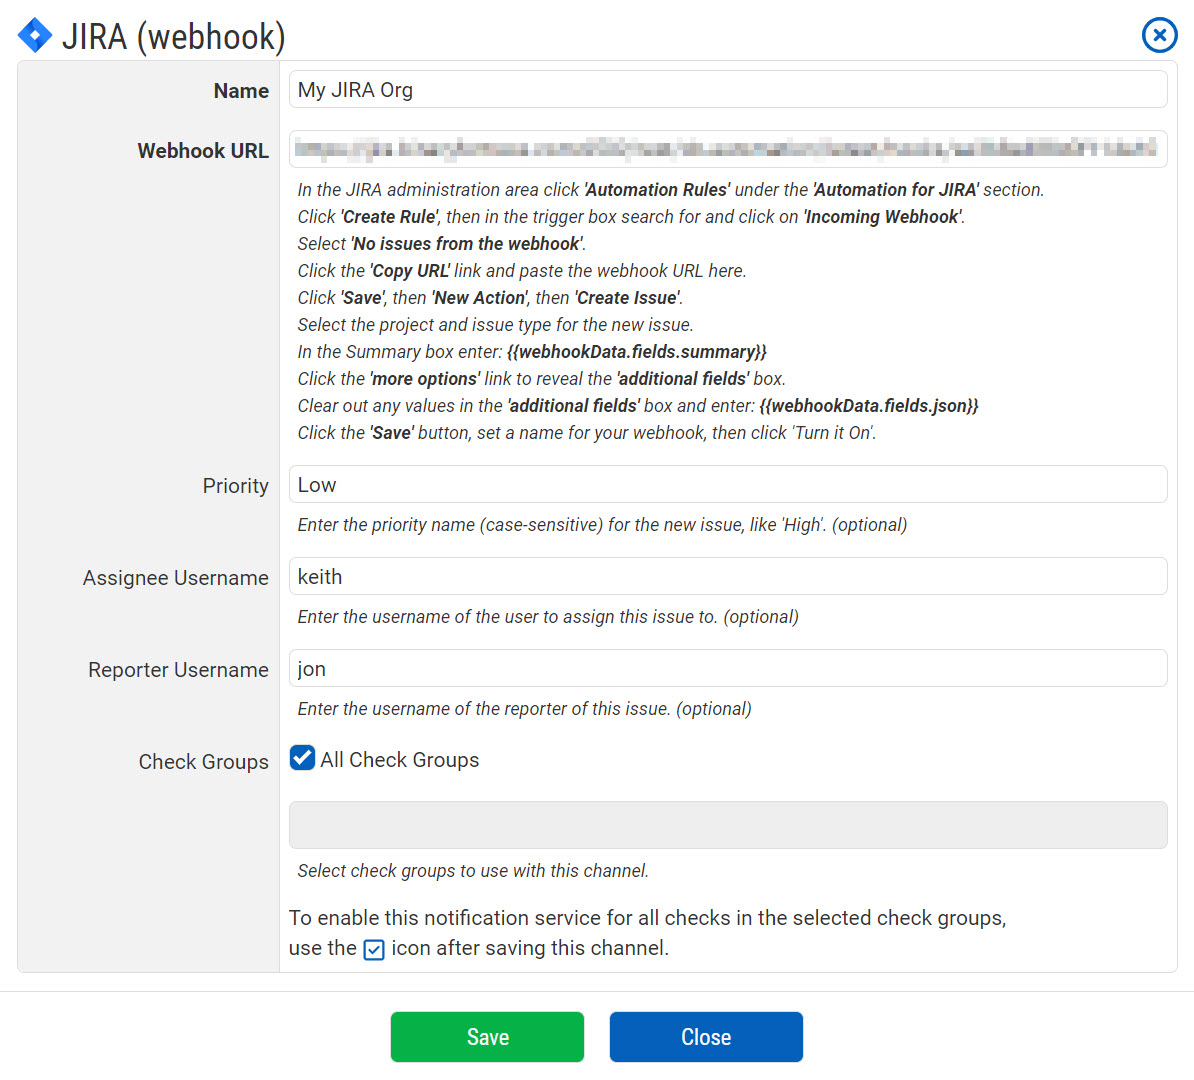 JIRA Notification Configuration